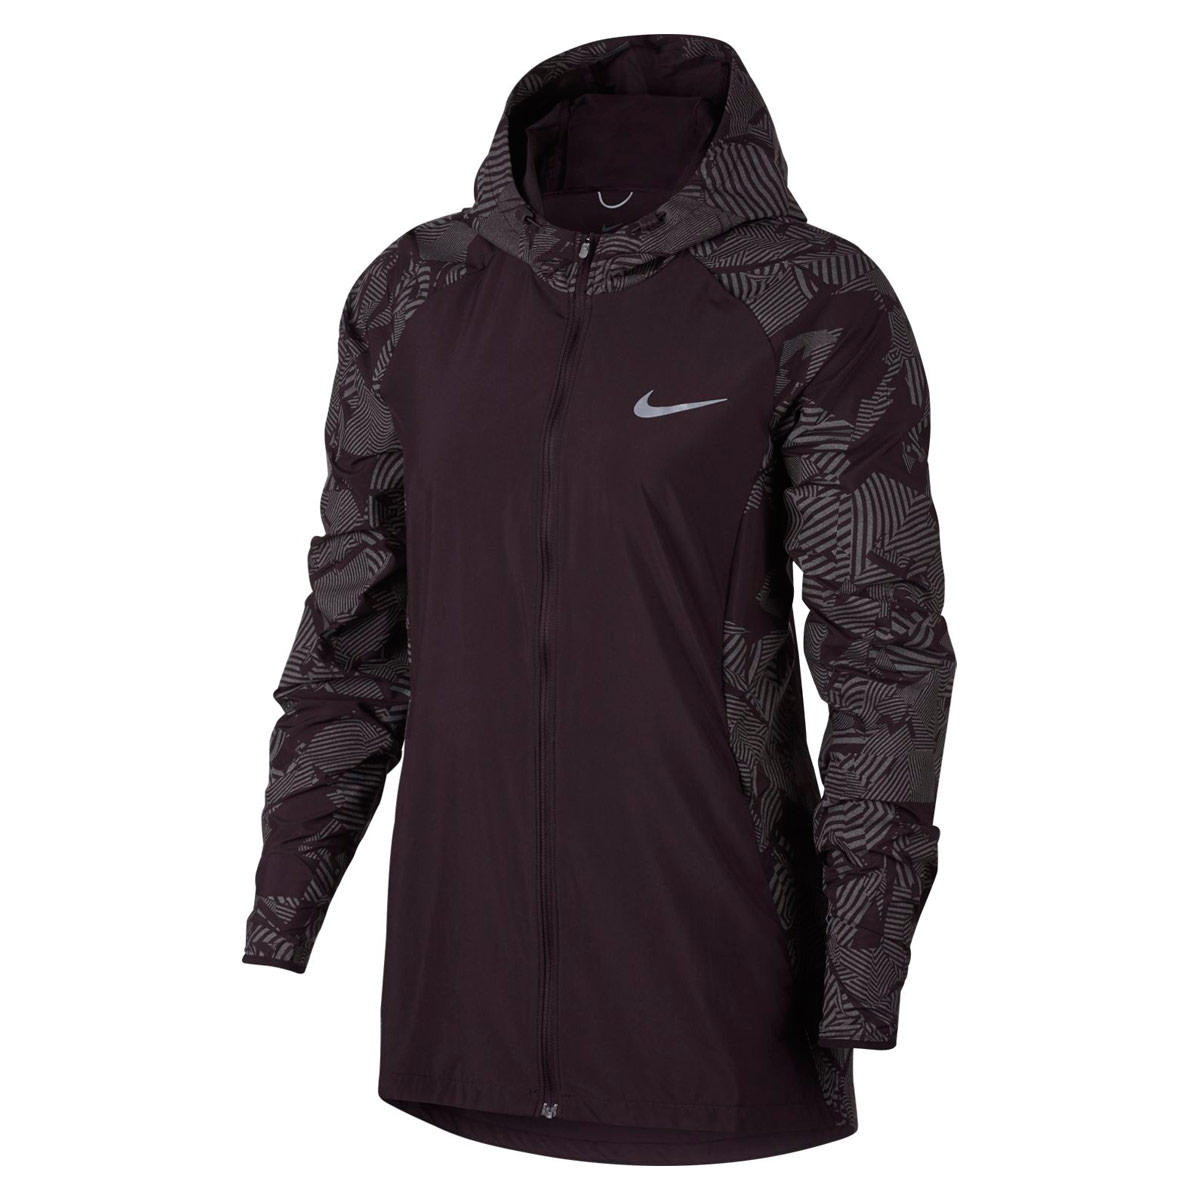 cbb50bfe4f59 Nike Essential Flash Running Jacket - Running jackets for Women - Brown